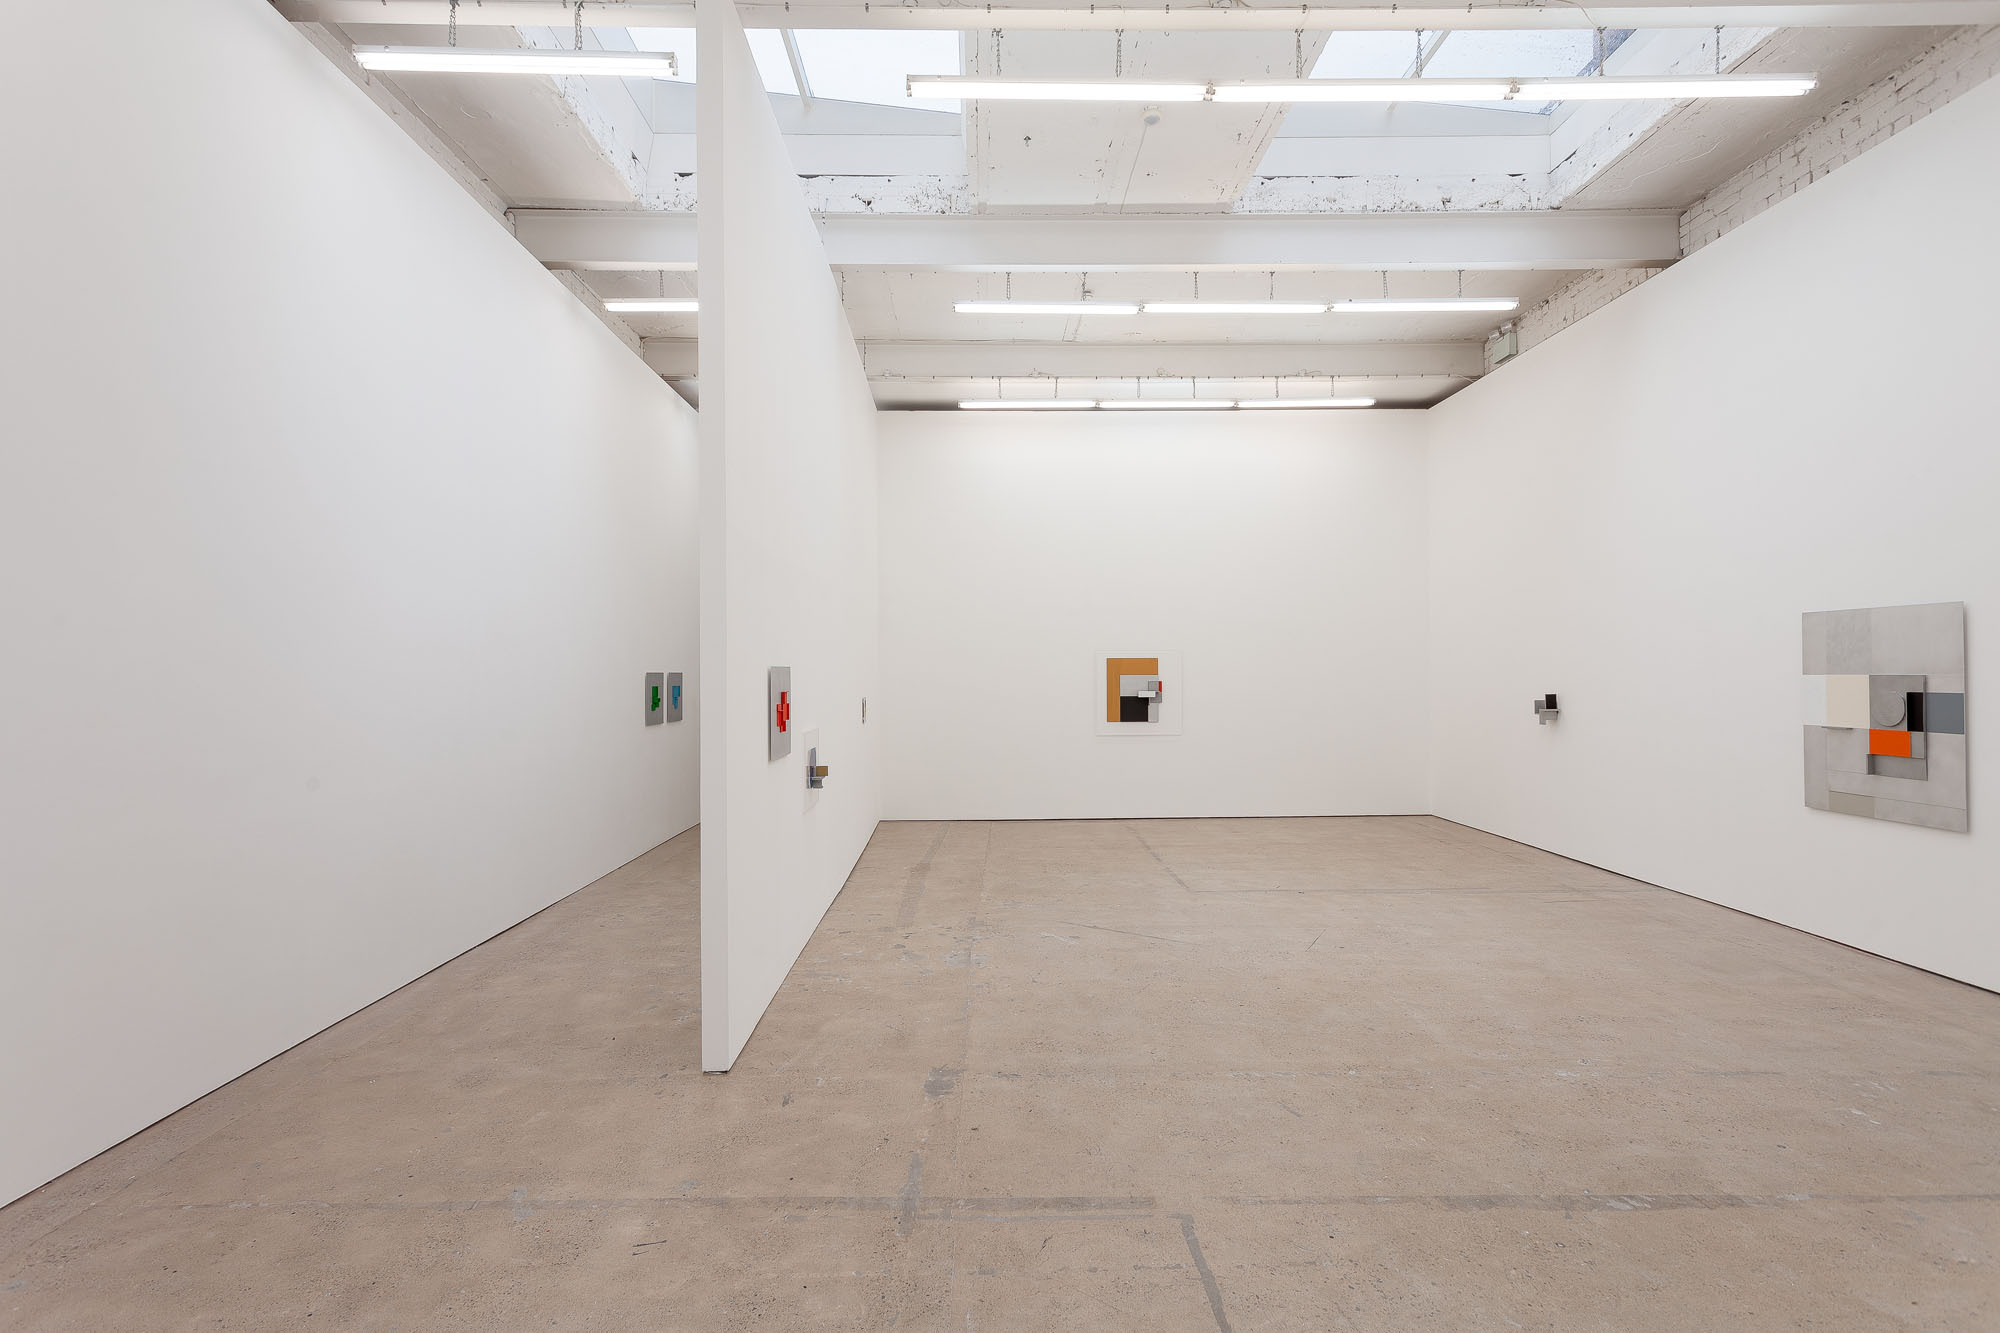 Toby Paterson at The Modern Institute